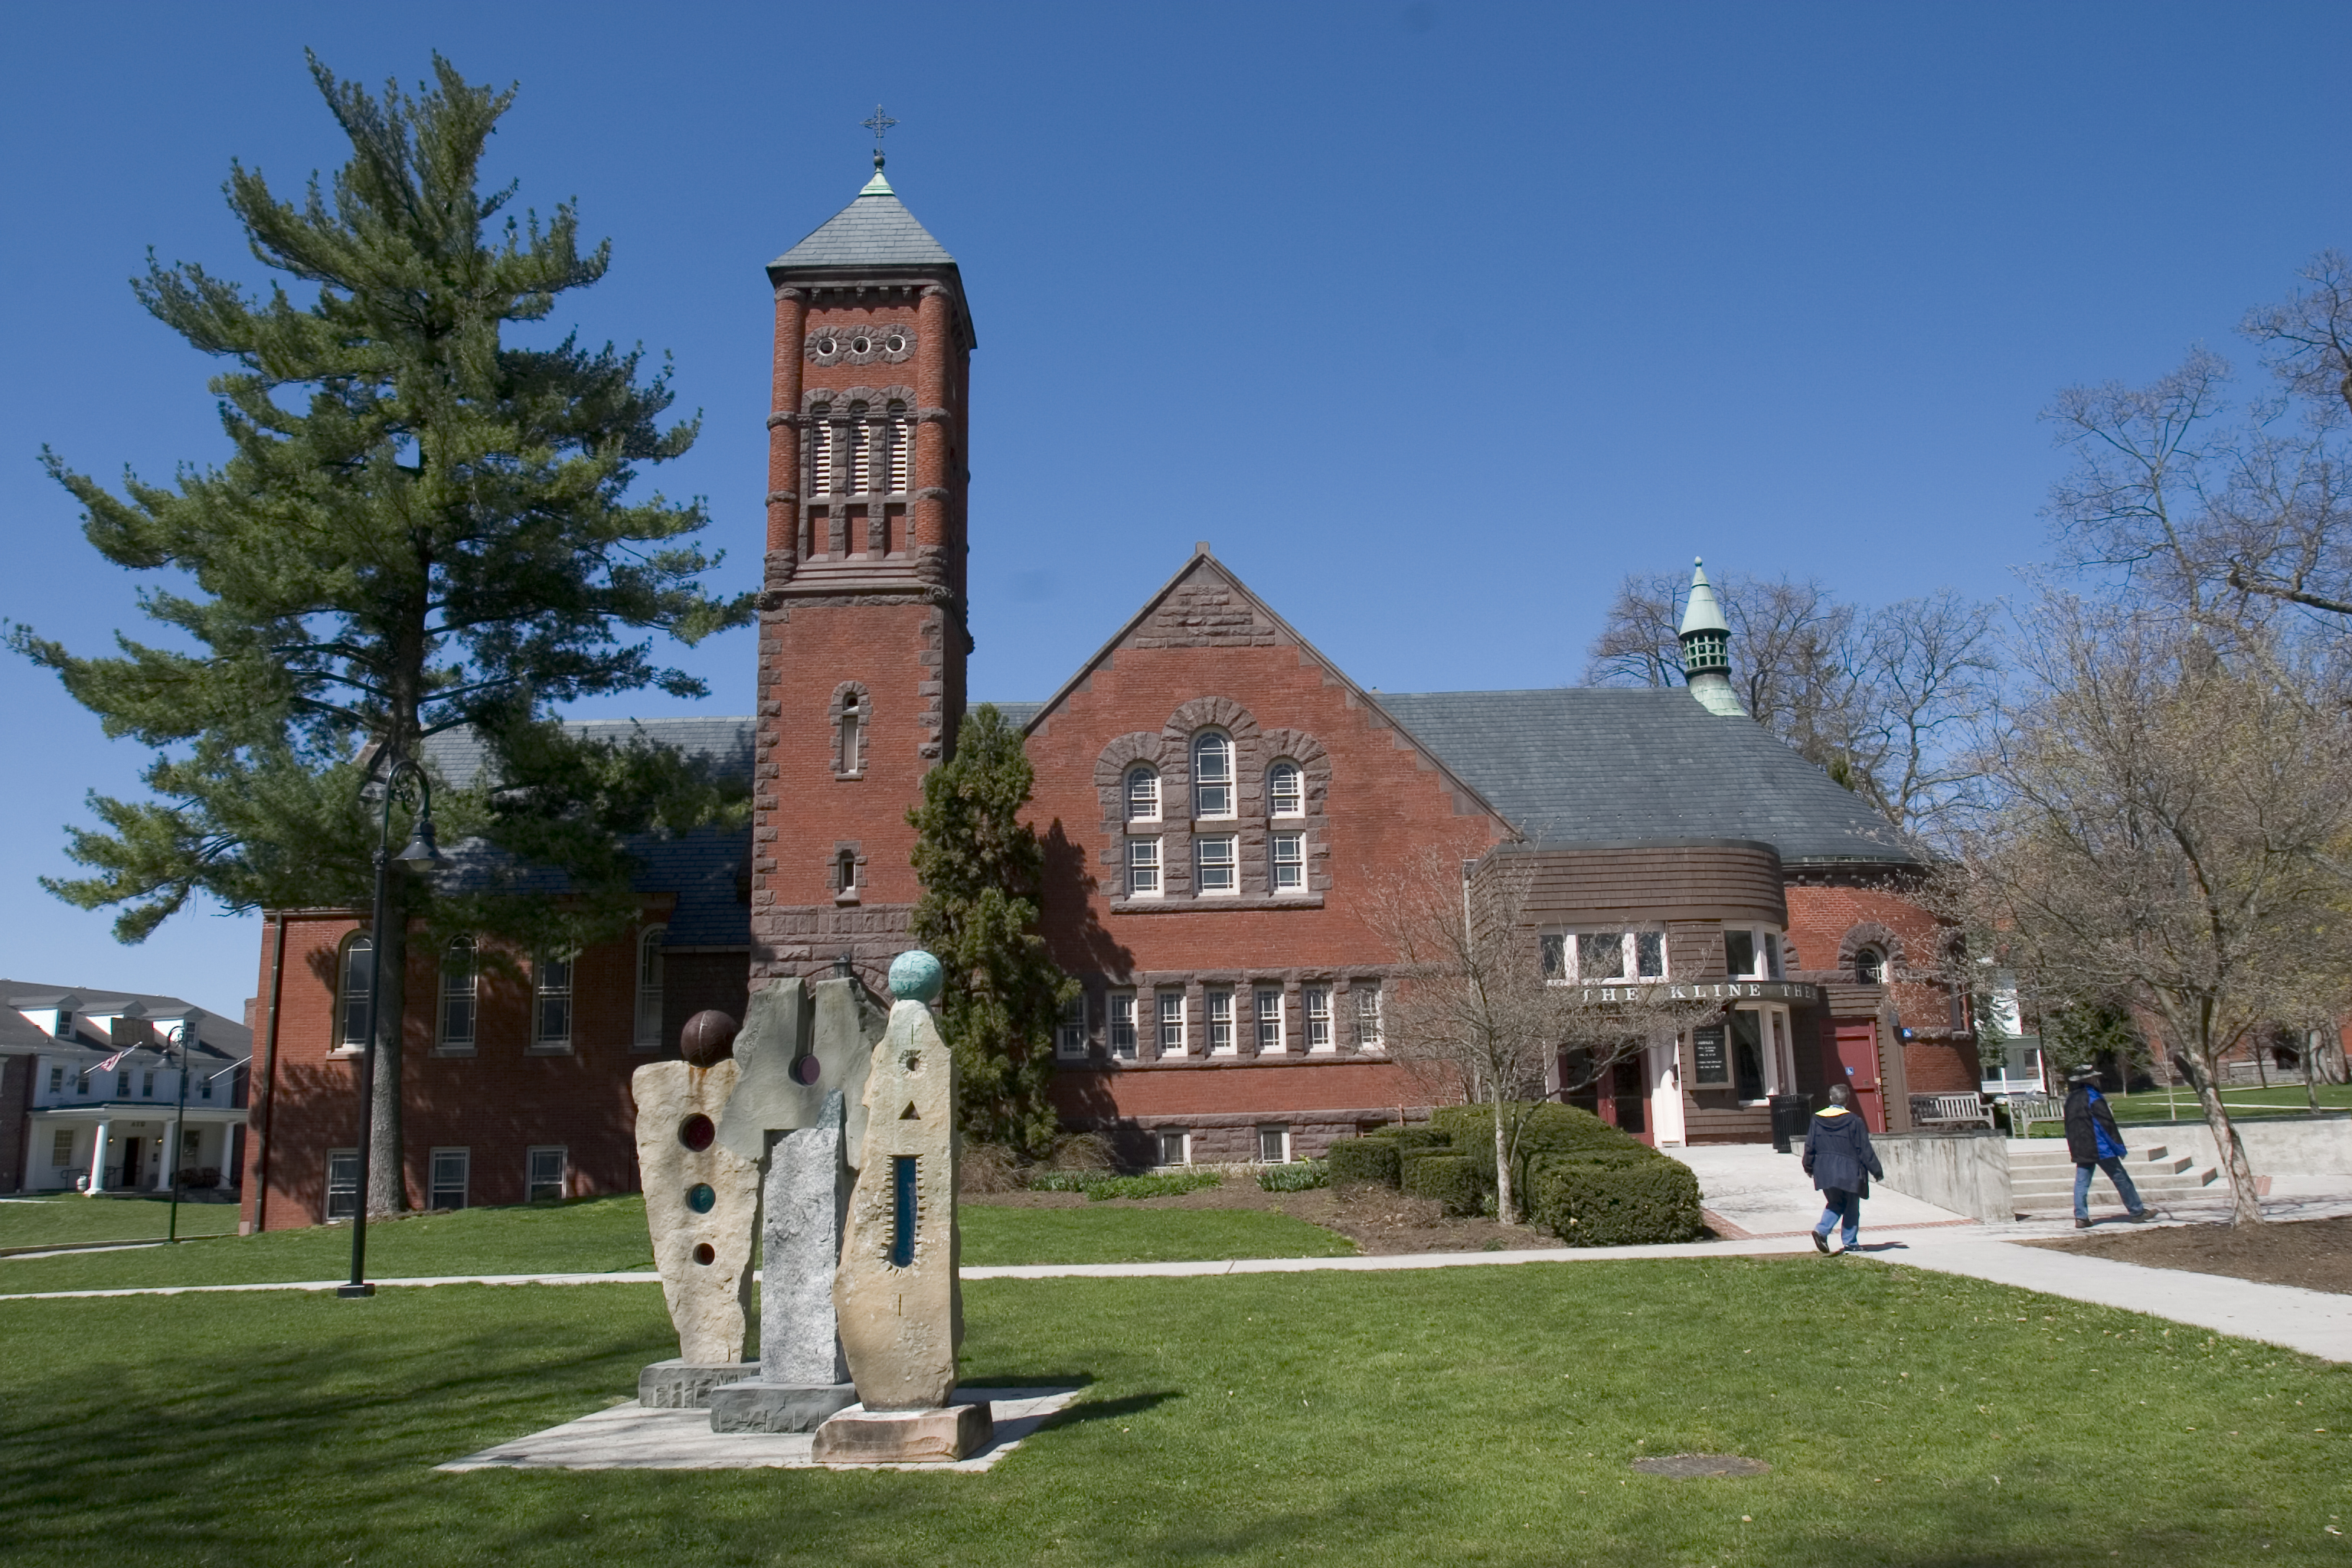 Brua Hall, which contains Kline Theatre (Photo courtesy of Gettysburg College)